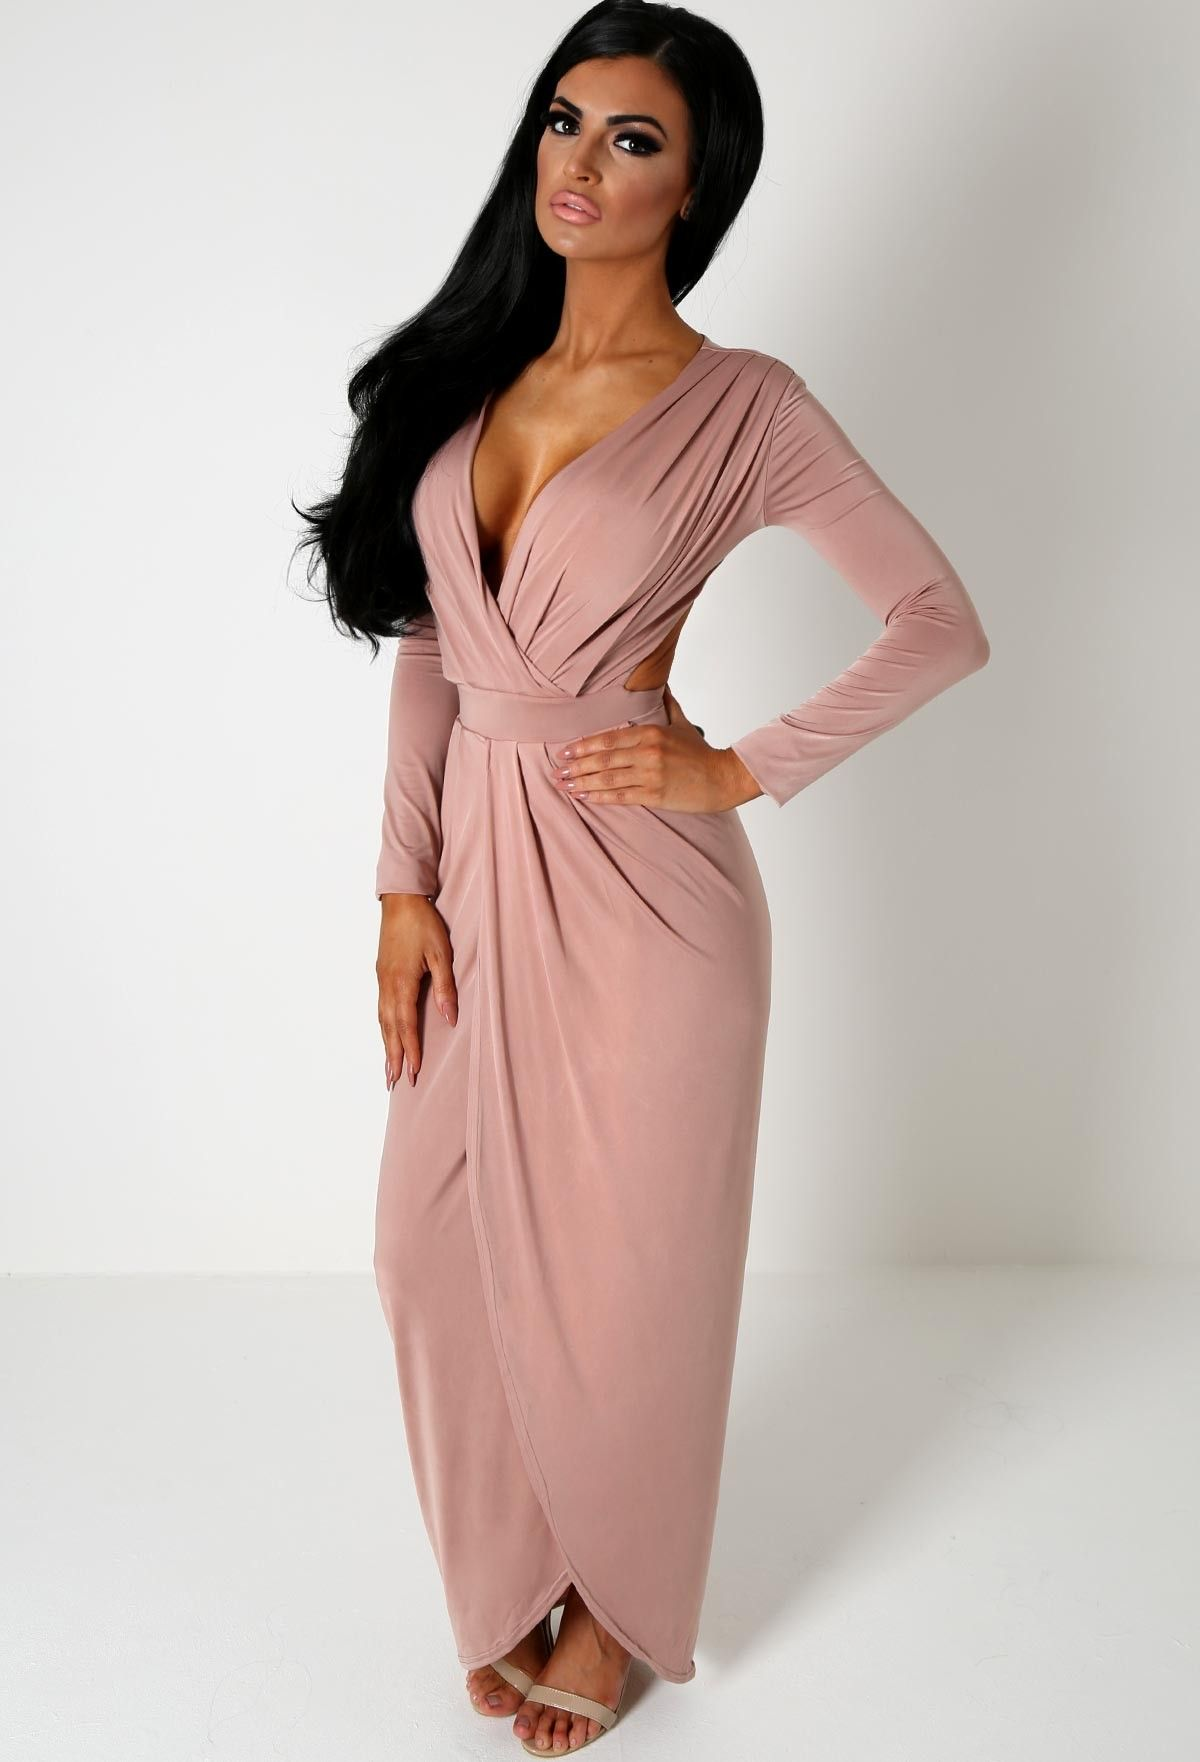 Afrodita Blush Slinky Cut Out Maxi Dress | Best Maxi dresses ideas